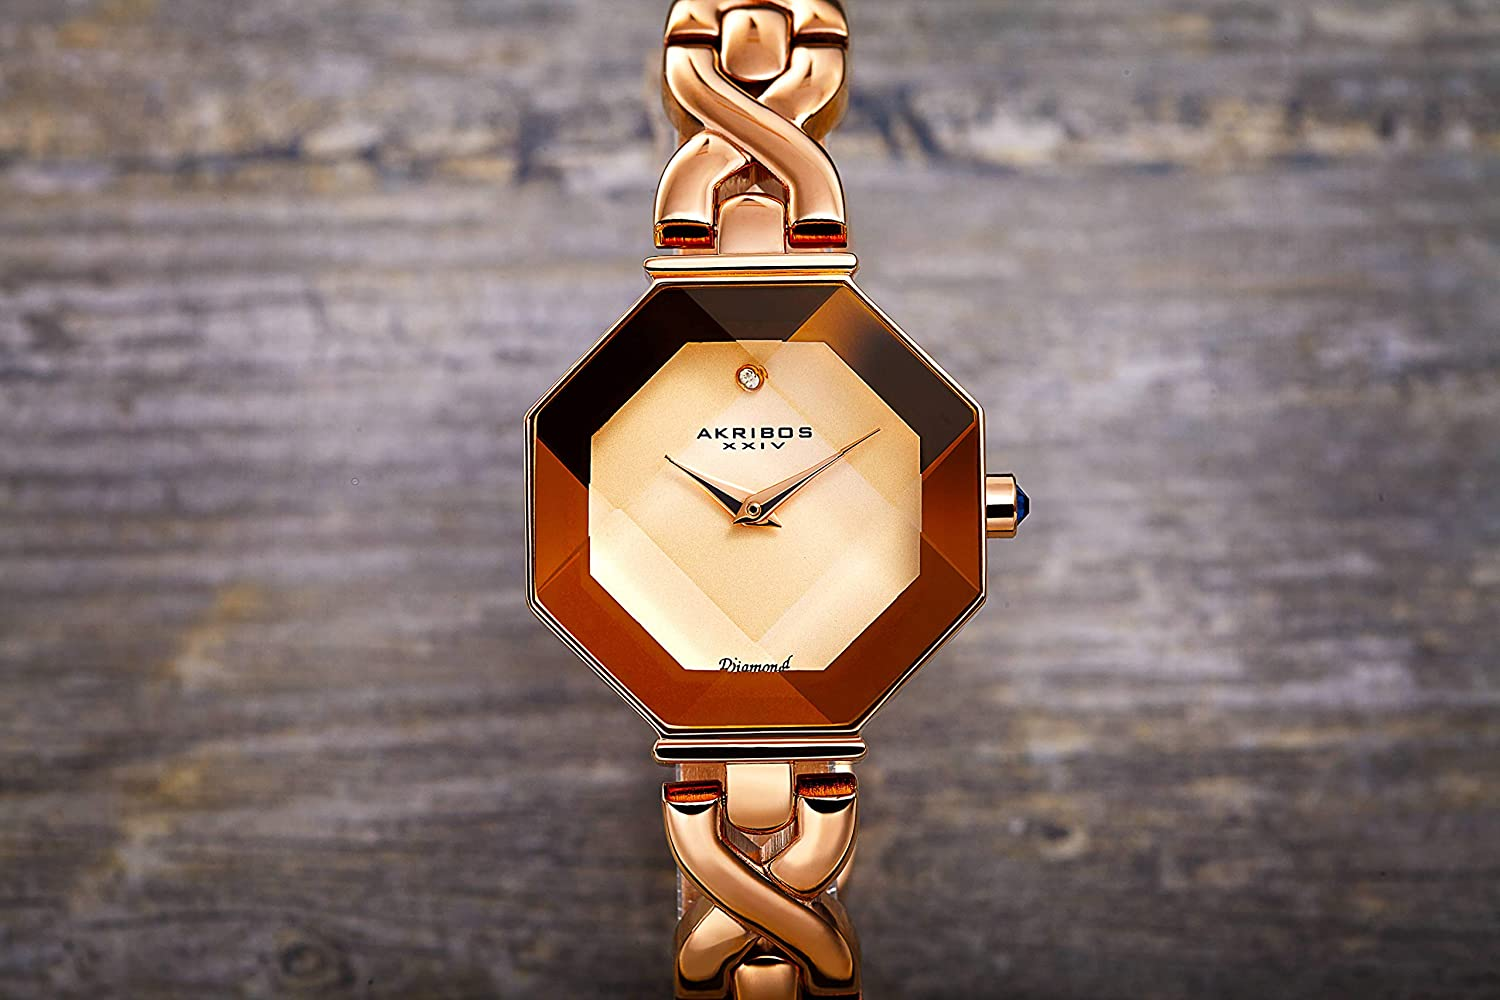 Akribos Octagonal Case Faceted Crystal Lens - Women's Watch - with Diamond Marker Adorned with Twisted Link Bracelet - AK1086 Rose Gold